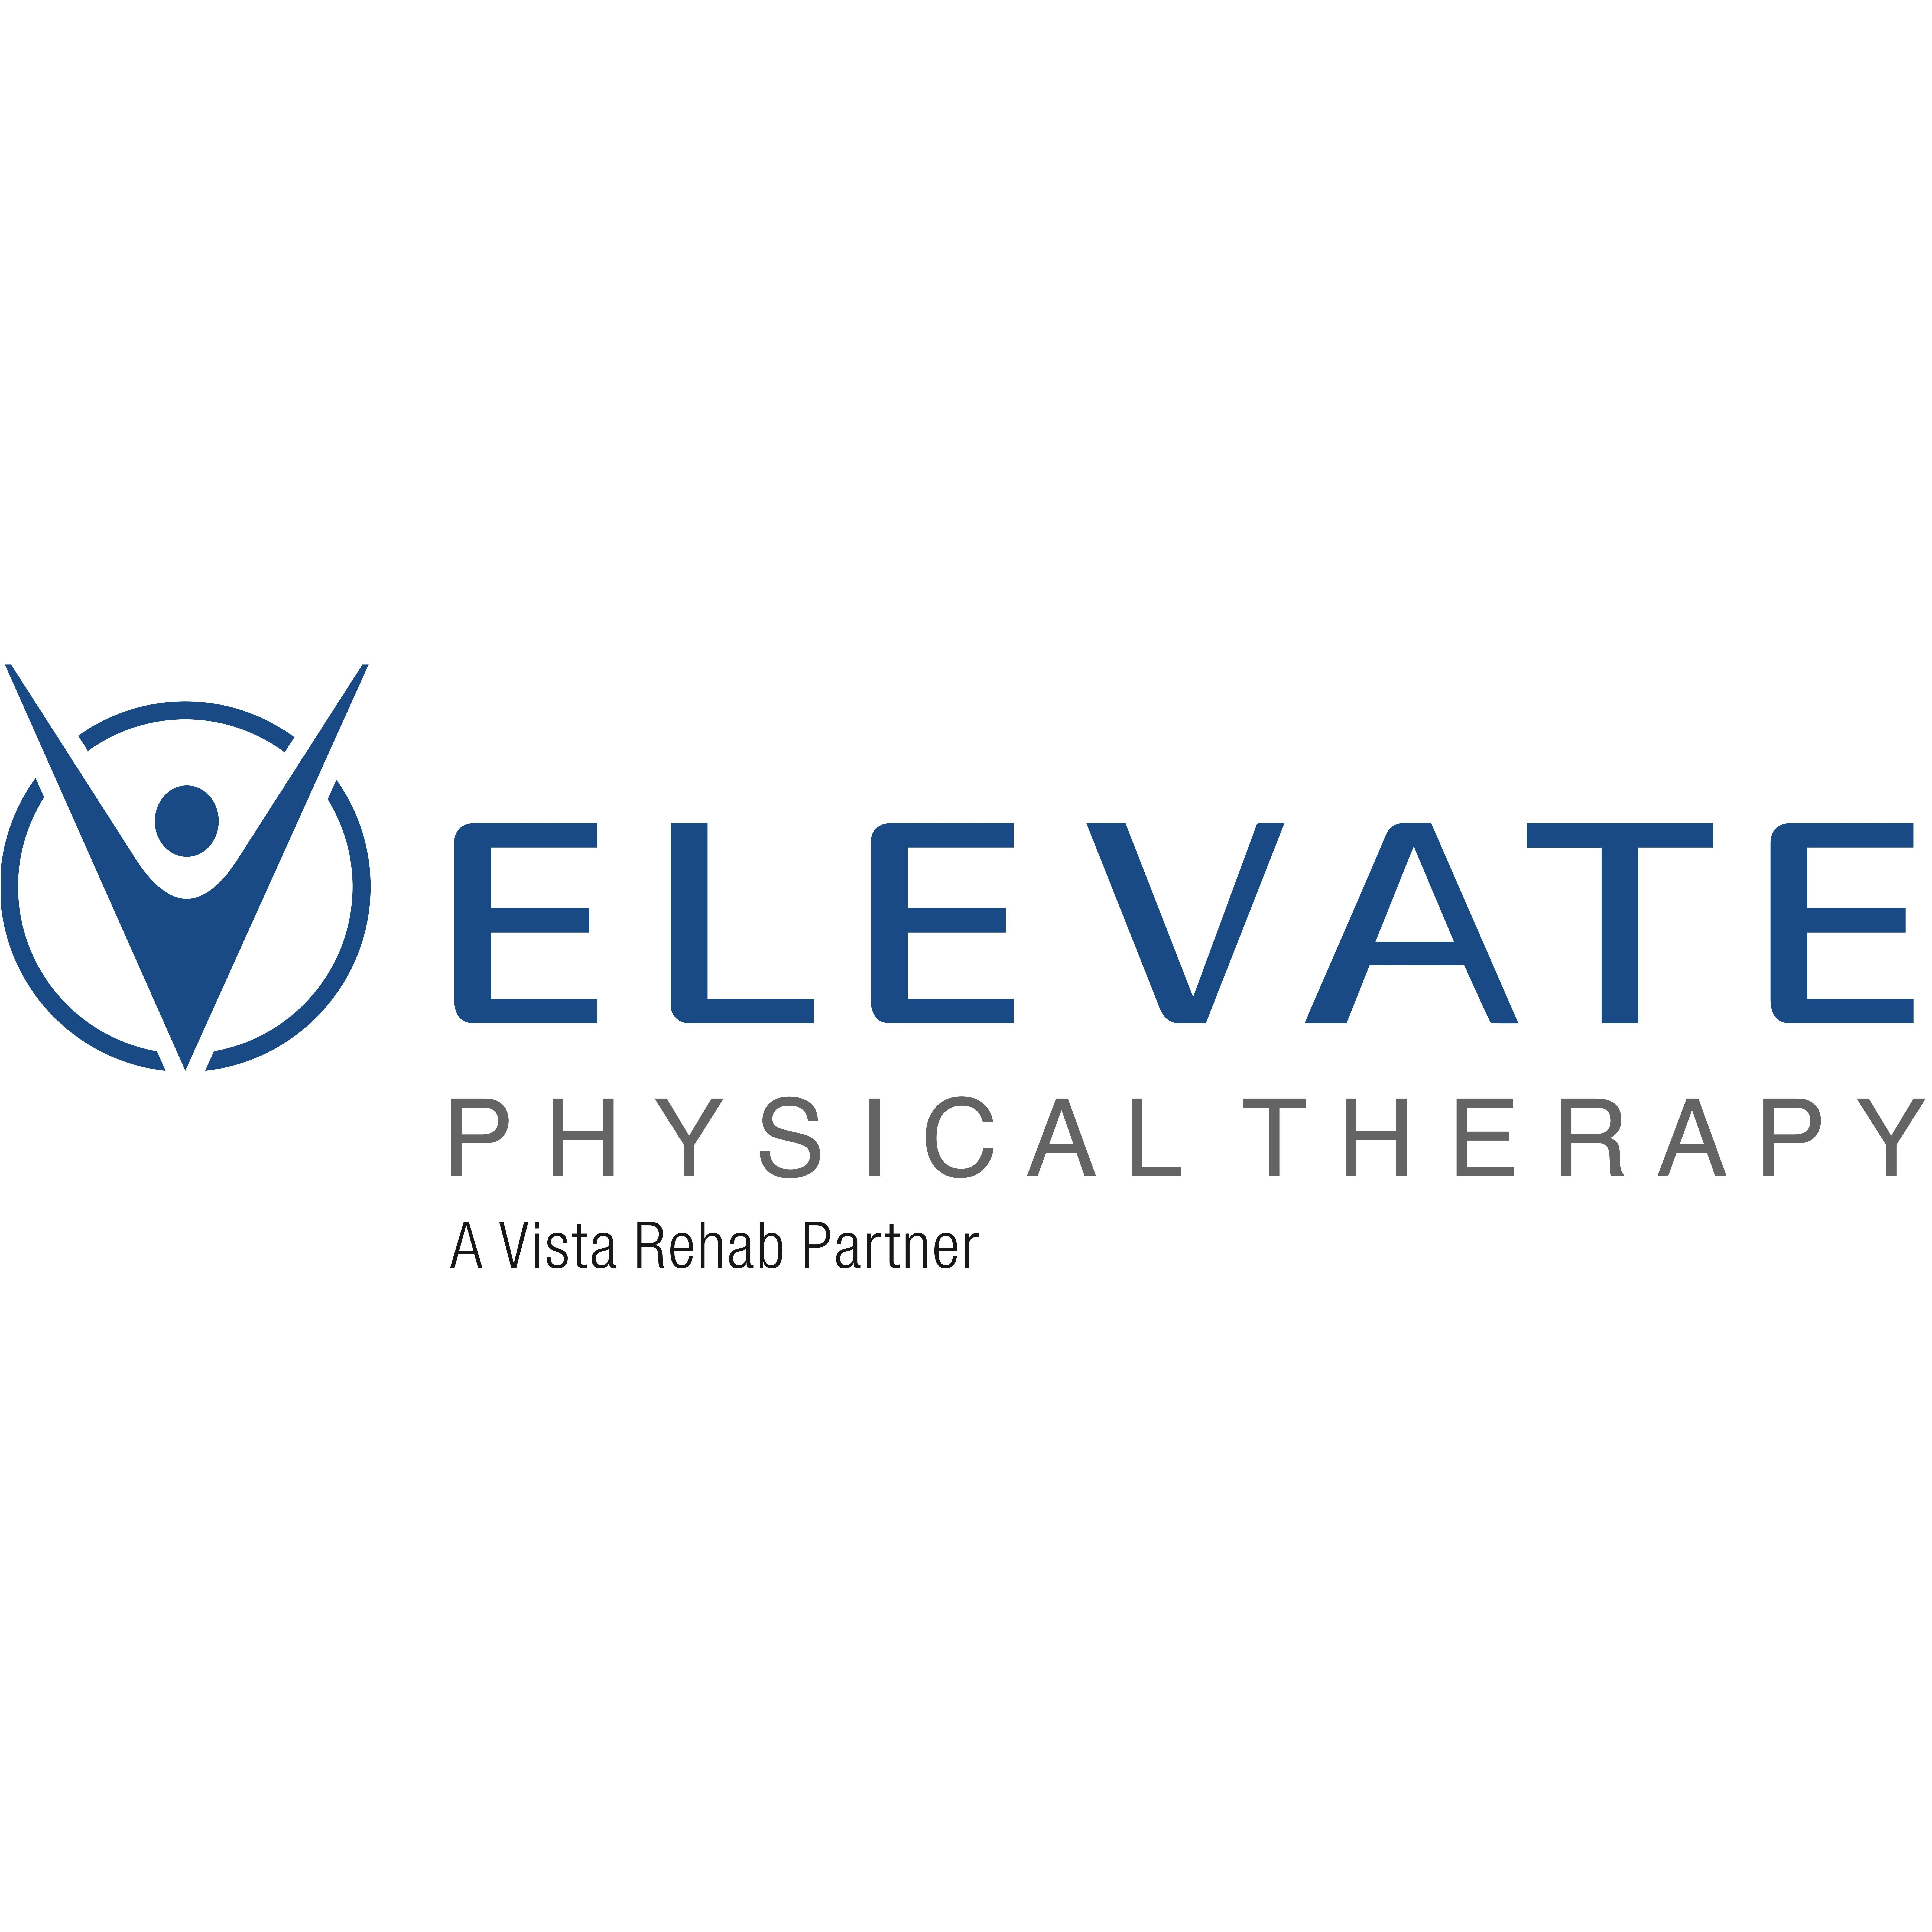 Elevate Physical Therapy - Carrollton, TX - Physical Therapy & Rehab